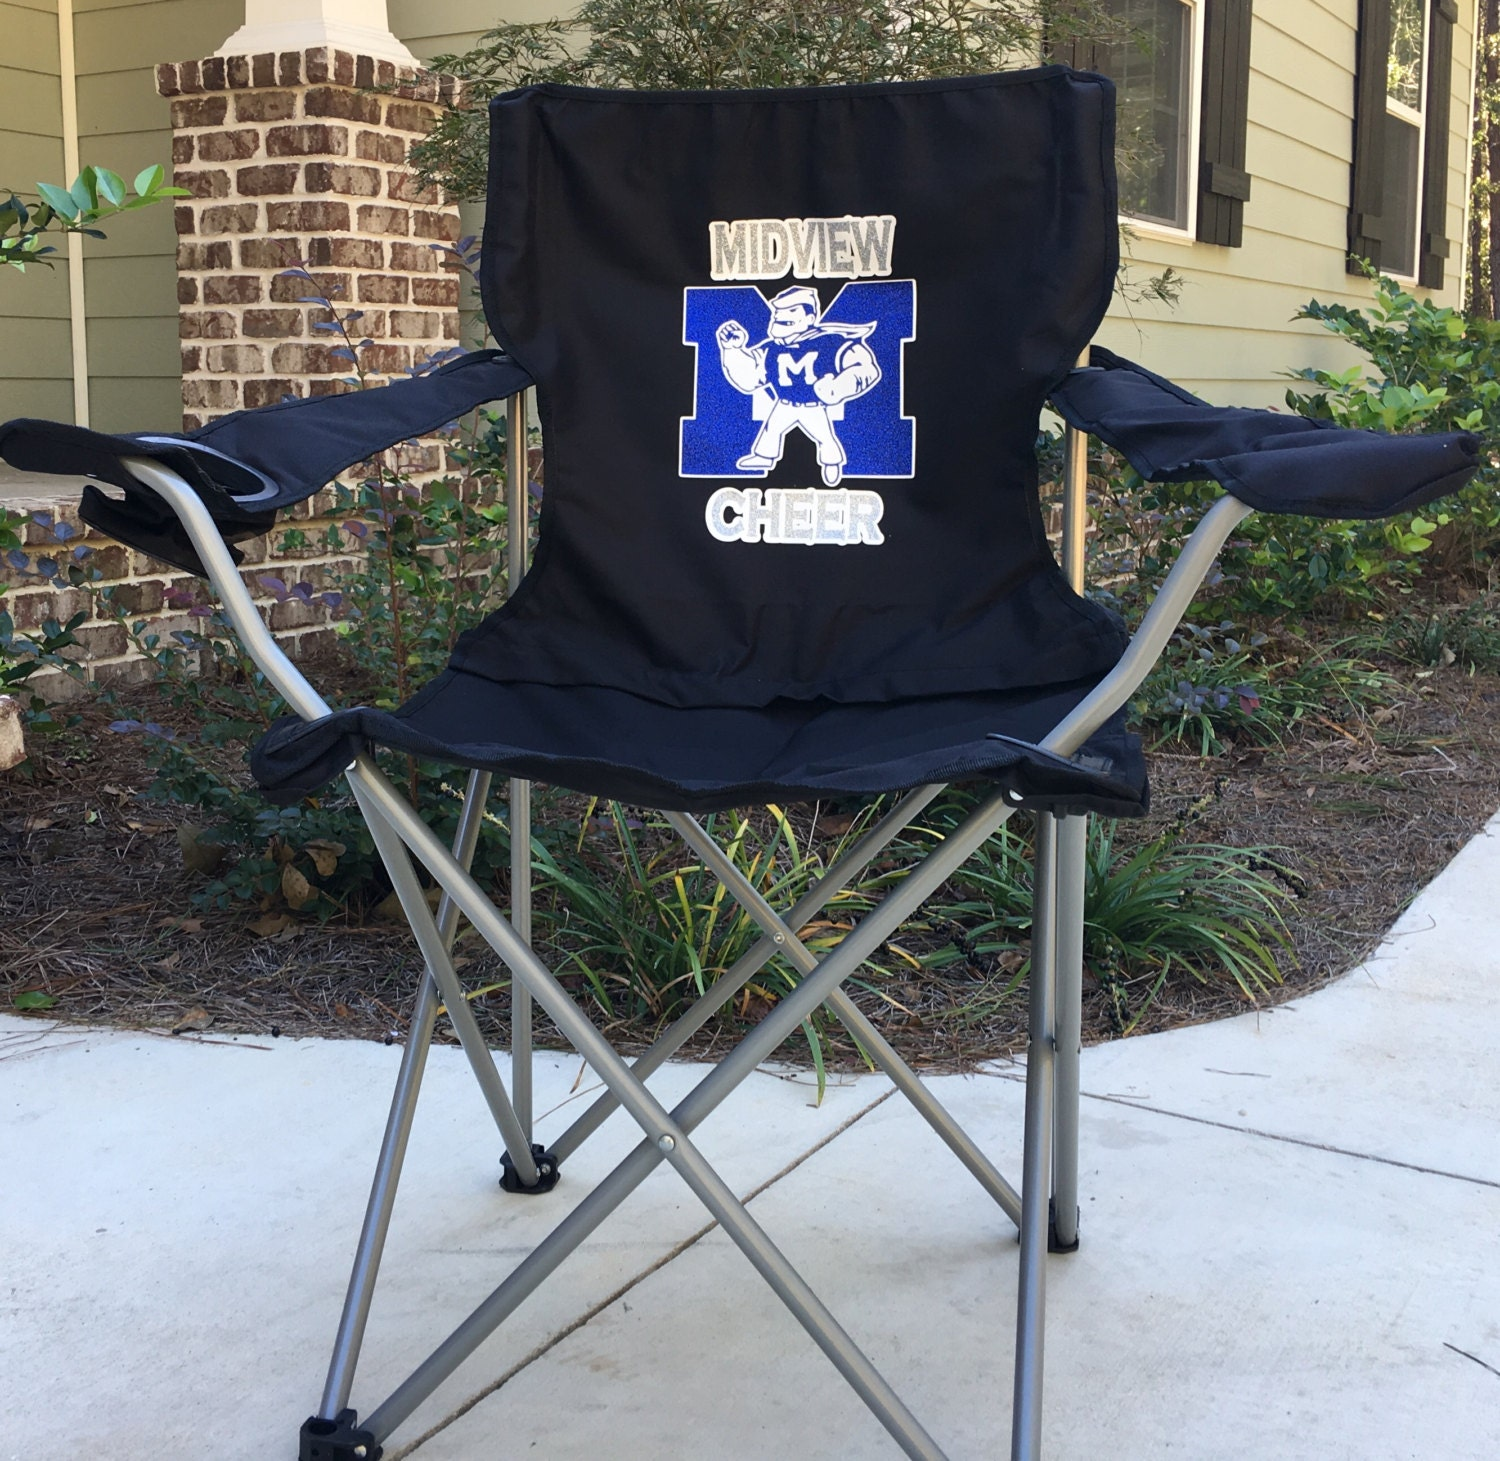 Superbe Monogrammed Chair, Coaches Gift, Custom Folding Camp Chair, RV Chair,  Tailgating Chair, Sports Team Chair, Personalized Chairs